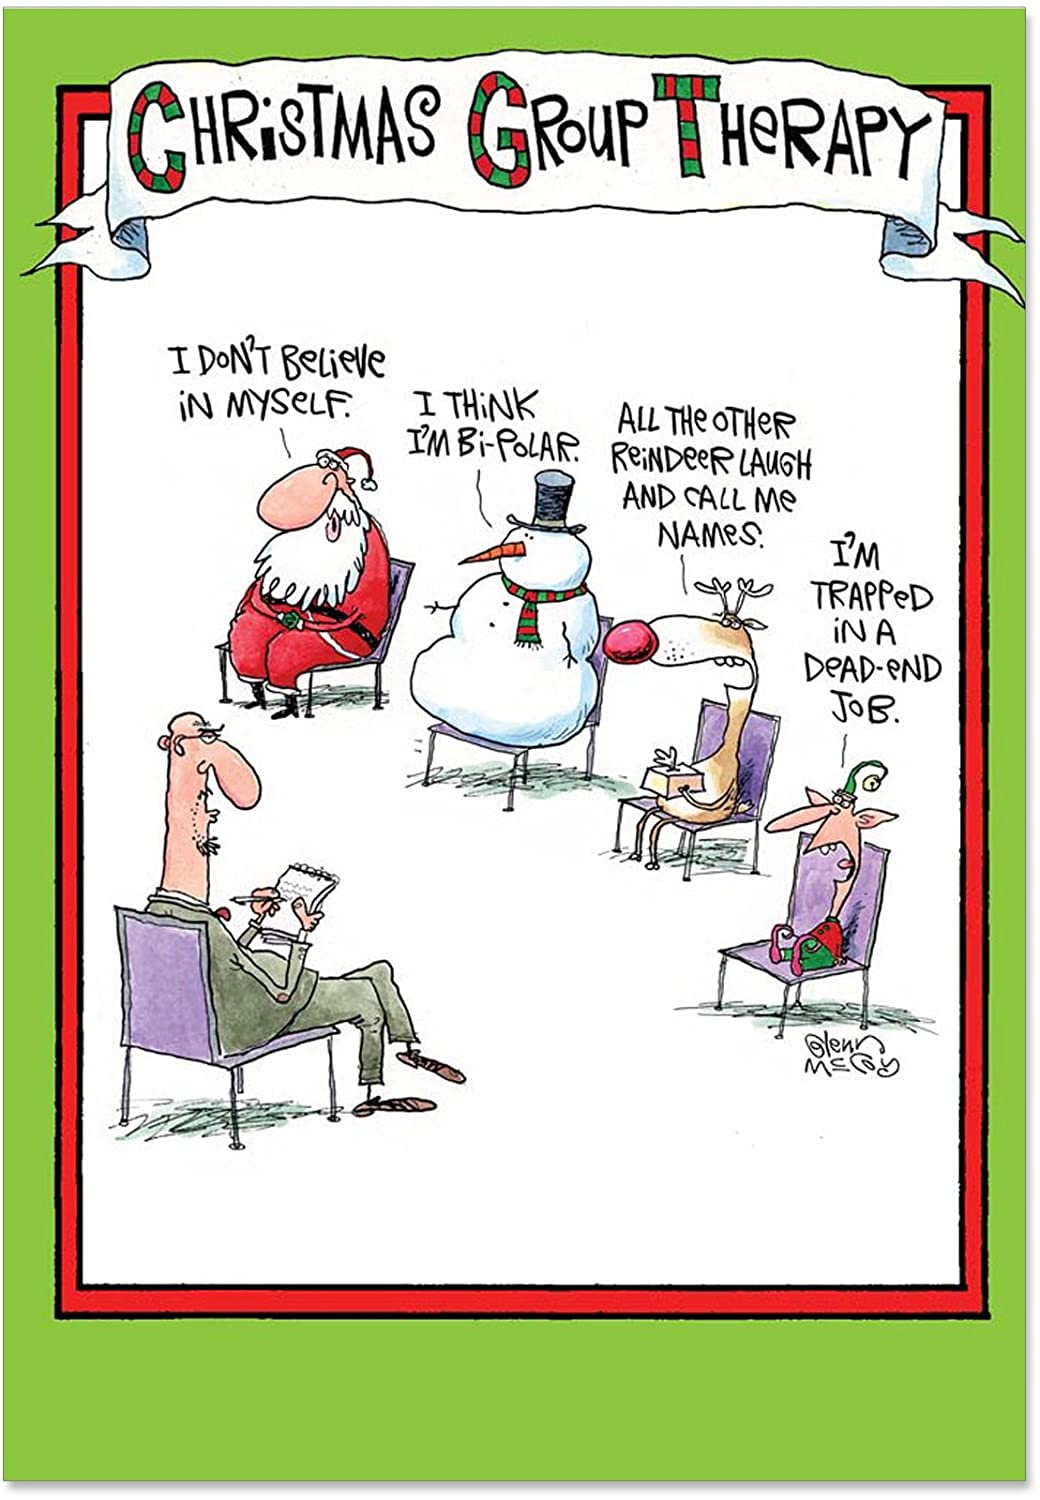 B5799 B5799 B5799 Box Set of 12 Group Therapy Naughty Humor Christmas Greeting Cards by nobleworks 1c17b5